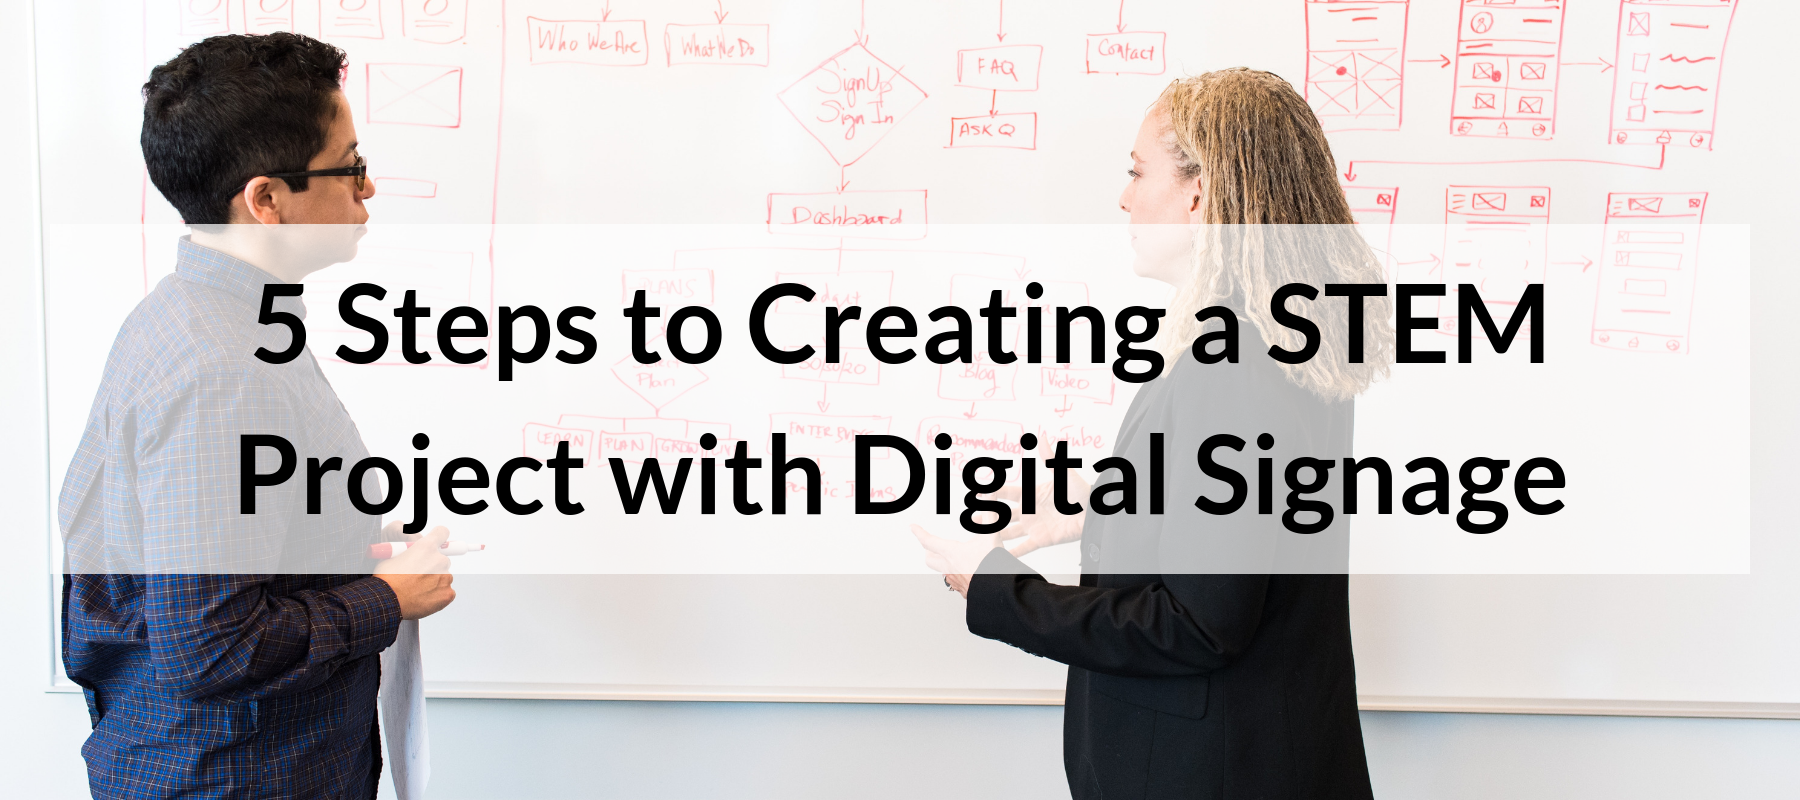 5 Steps to Creating a STEM Project with Digital Signage